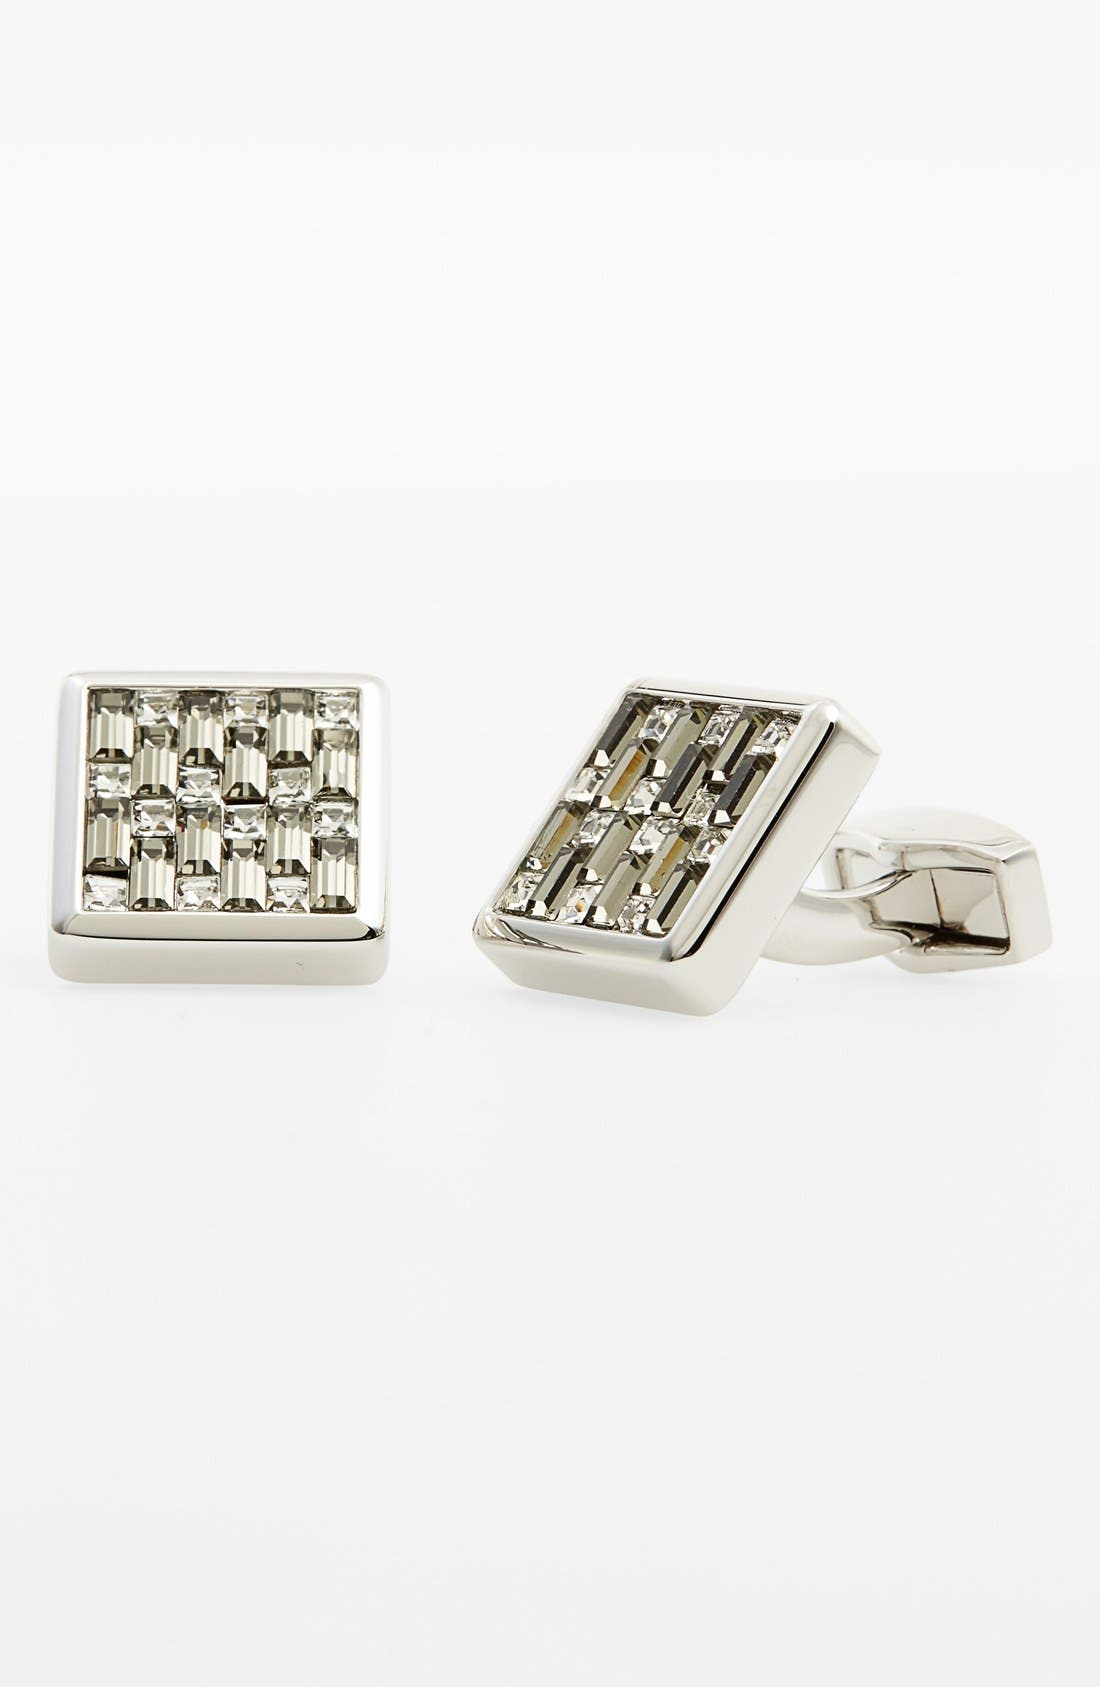 Swarovski Square Cuff Links,                             Main thumbnail 1, color,                             BLACK